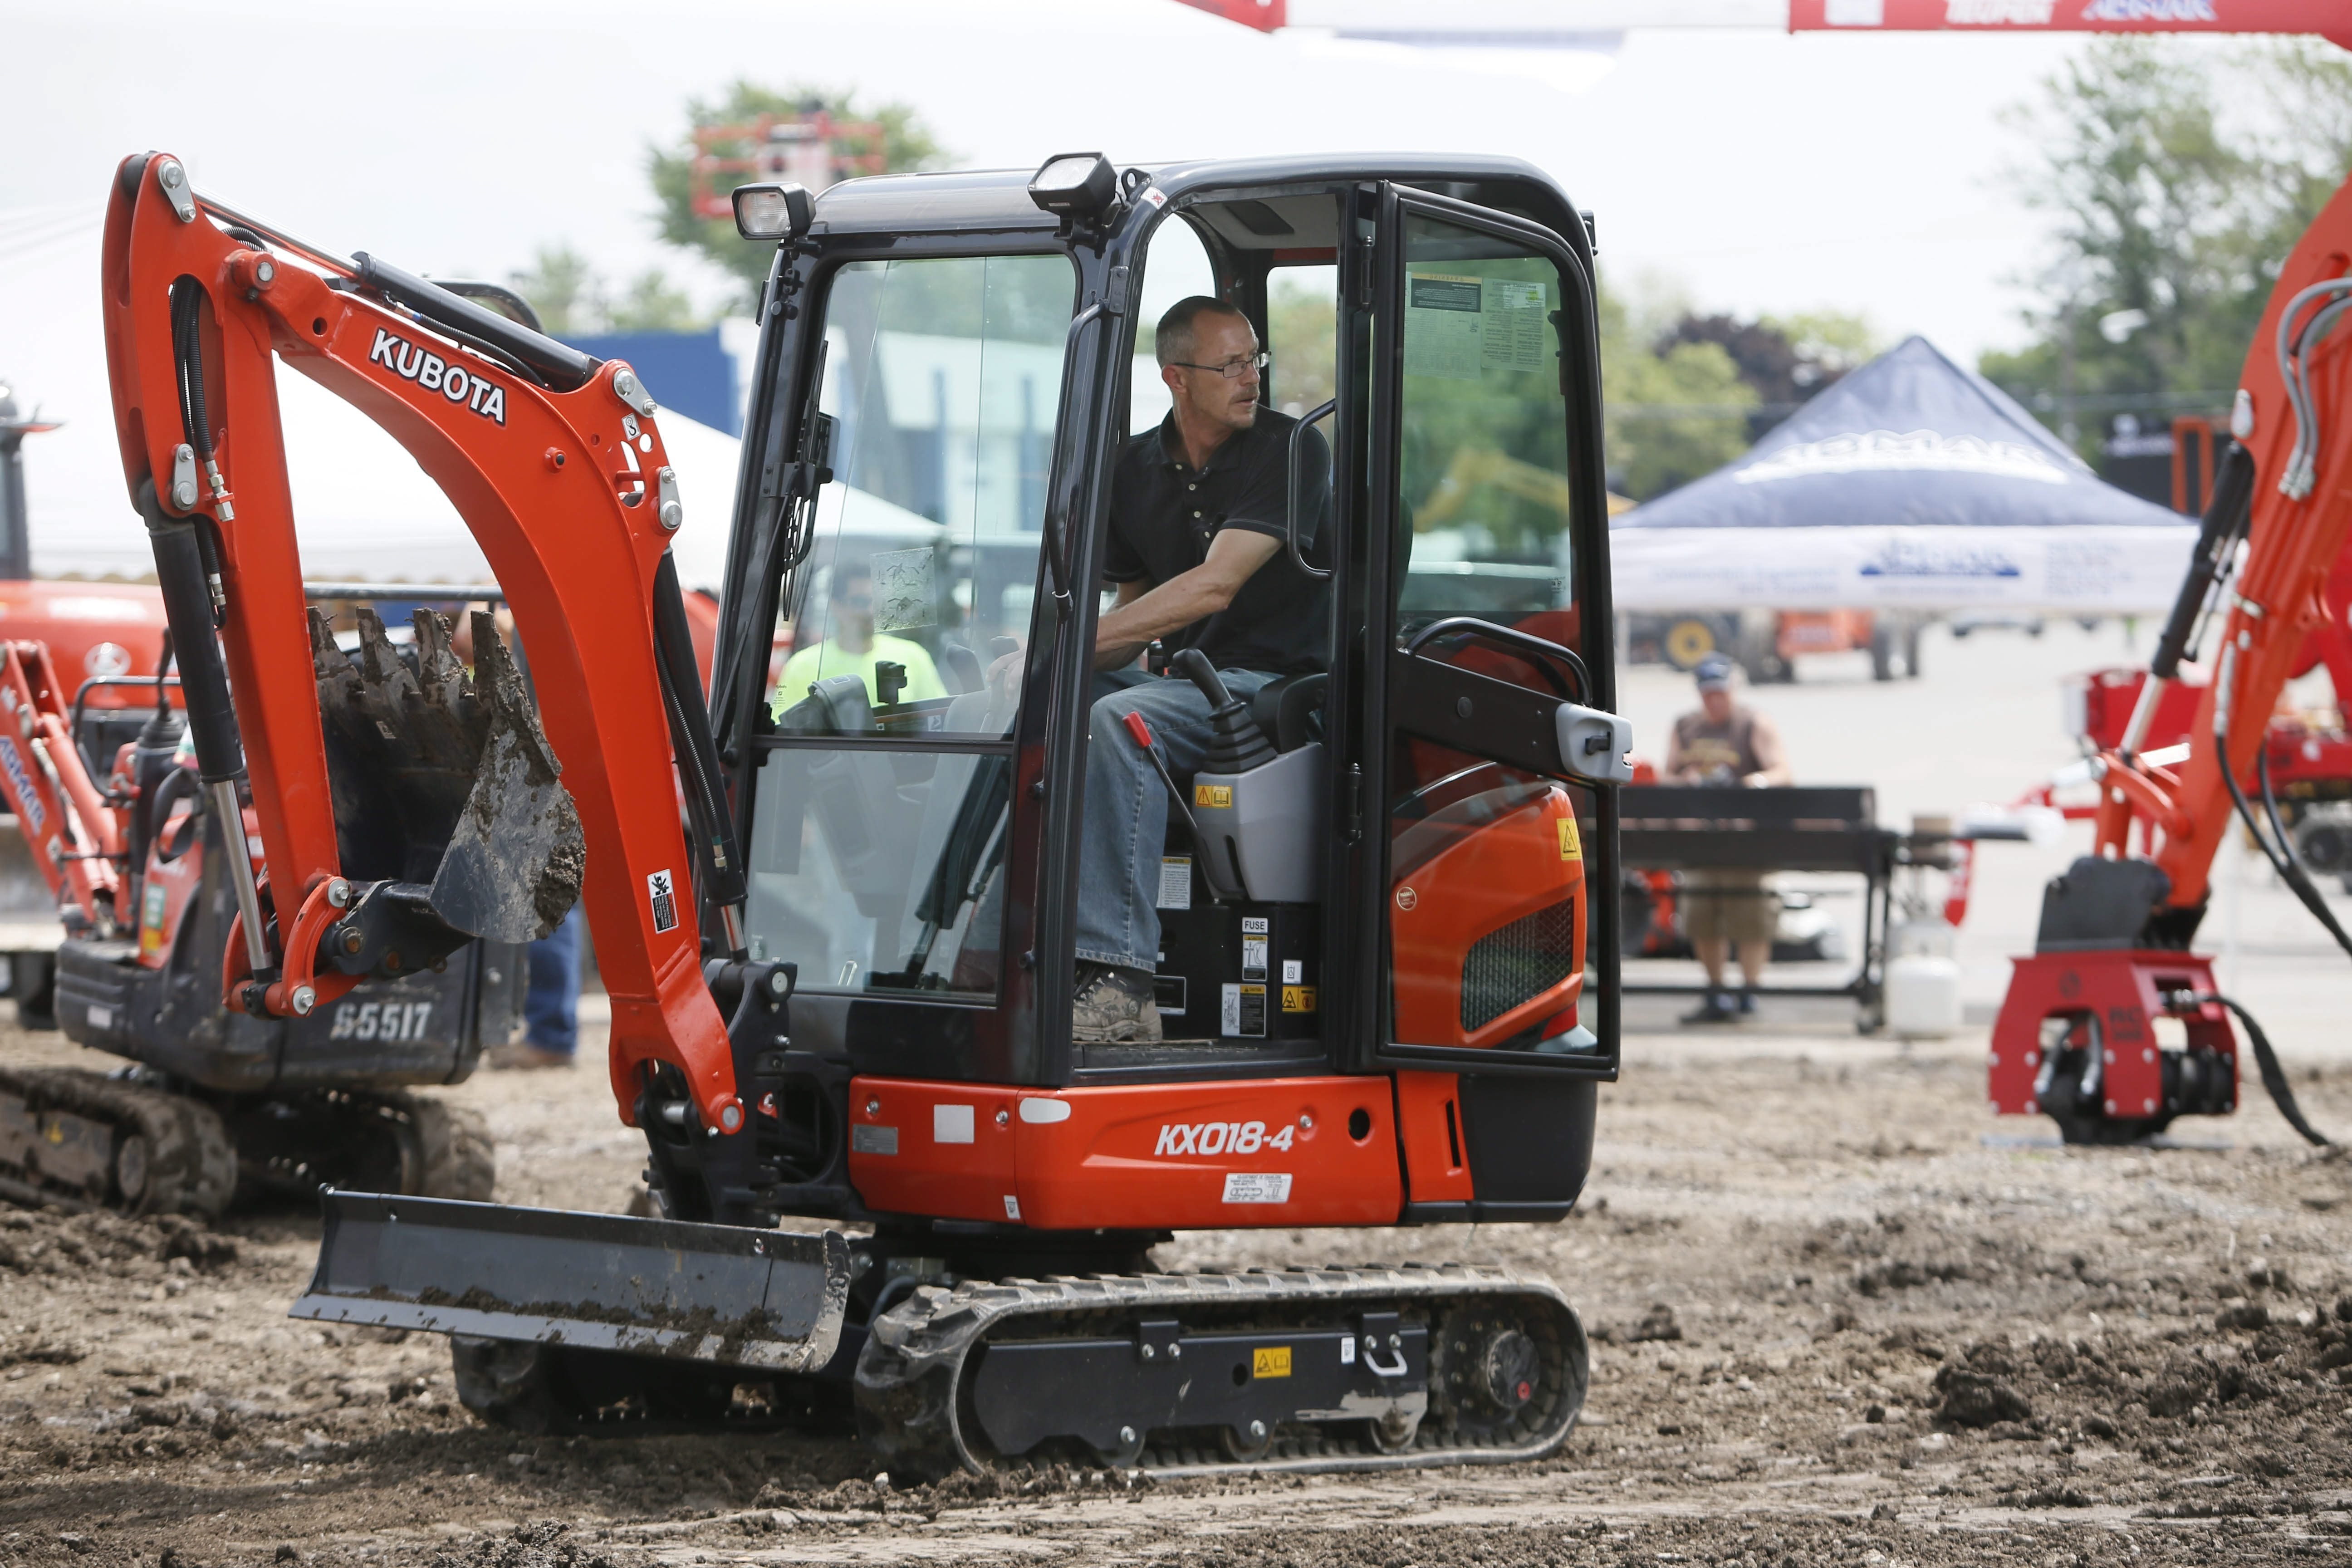 Bob Haley of Alfred State College tries out an excavator during the Admar Spring Construction Expo at Admar Construction Equipment & Supplies in Tonawanda on Tuesday.